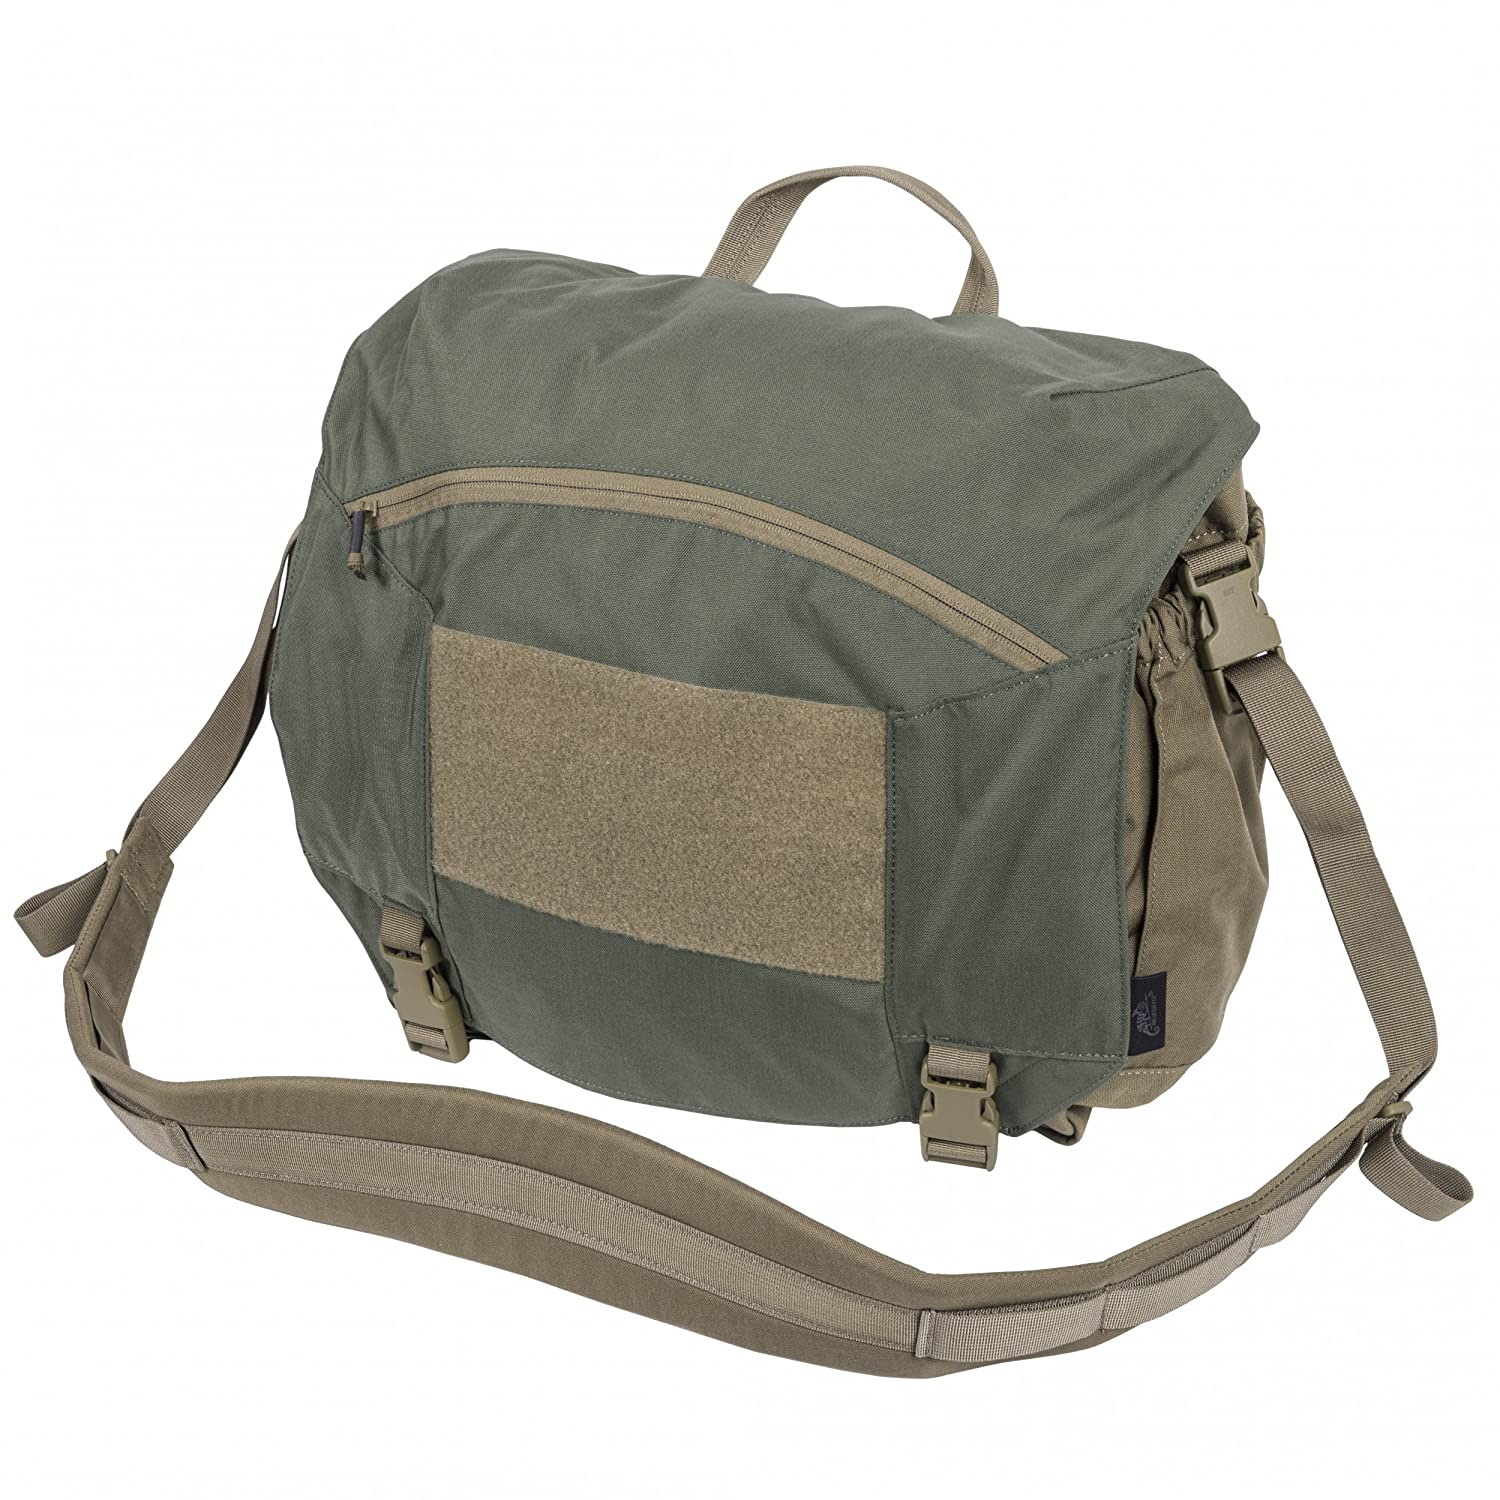 Helikon-Tex Urban Courier Bag Large -Cordura- Adaptive Grün/Coyote A